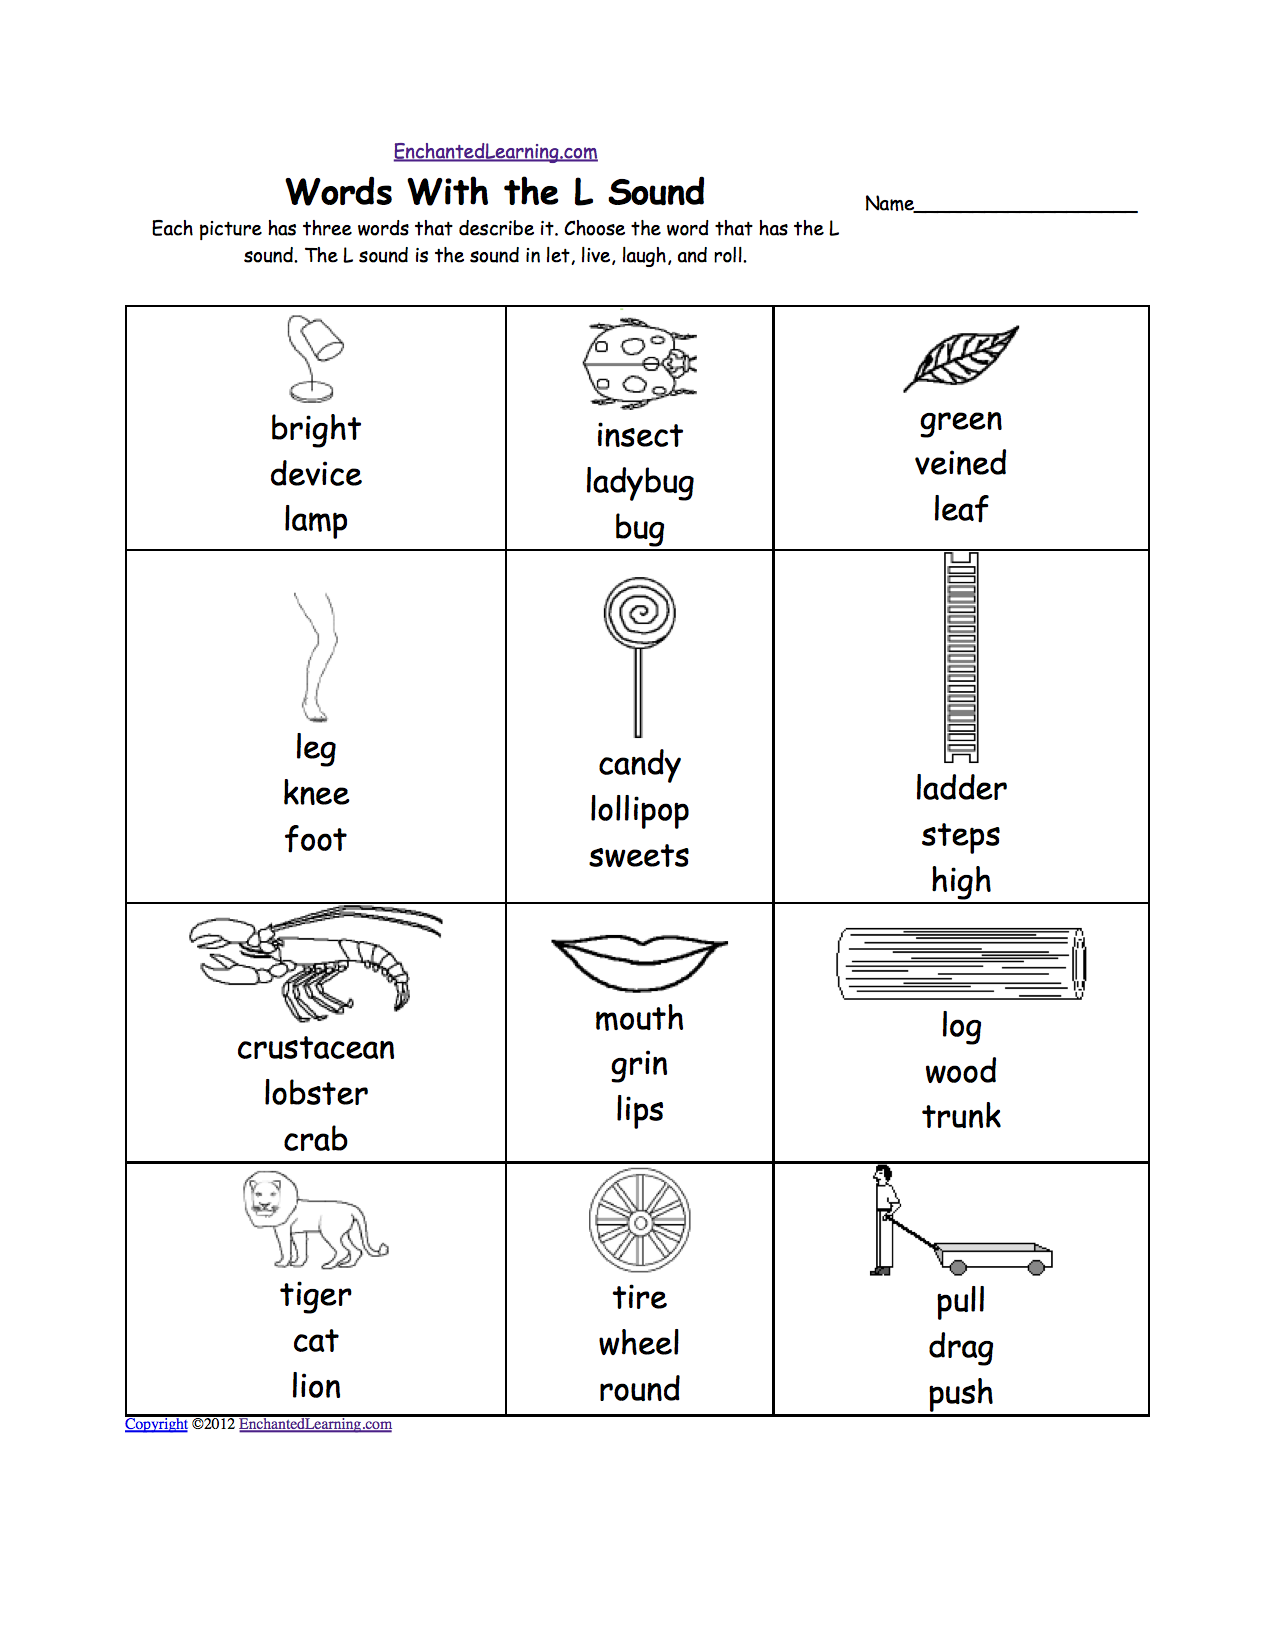 Worksheet Th Phonics phonics worksheets multiple choice to print enchantedlearning com